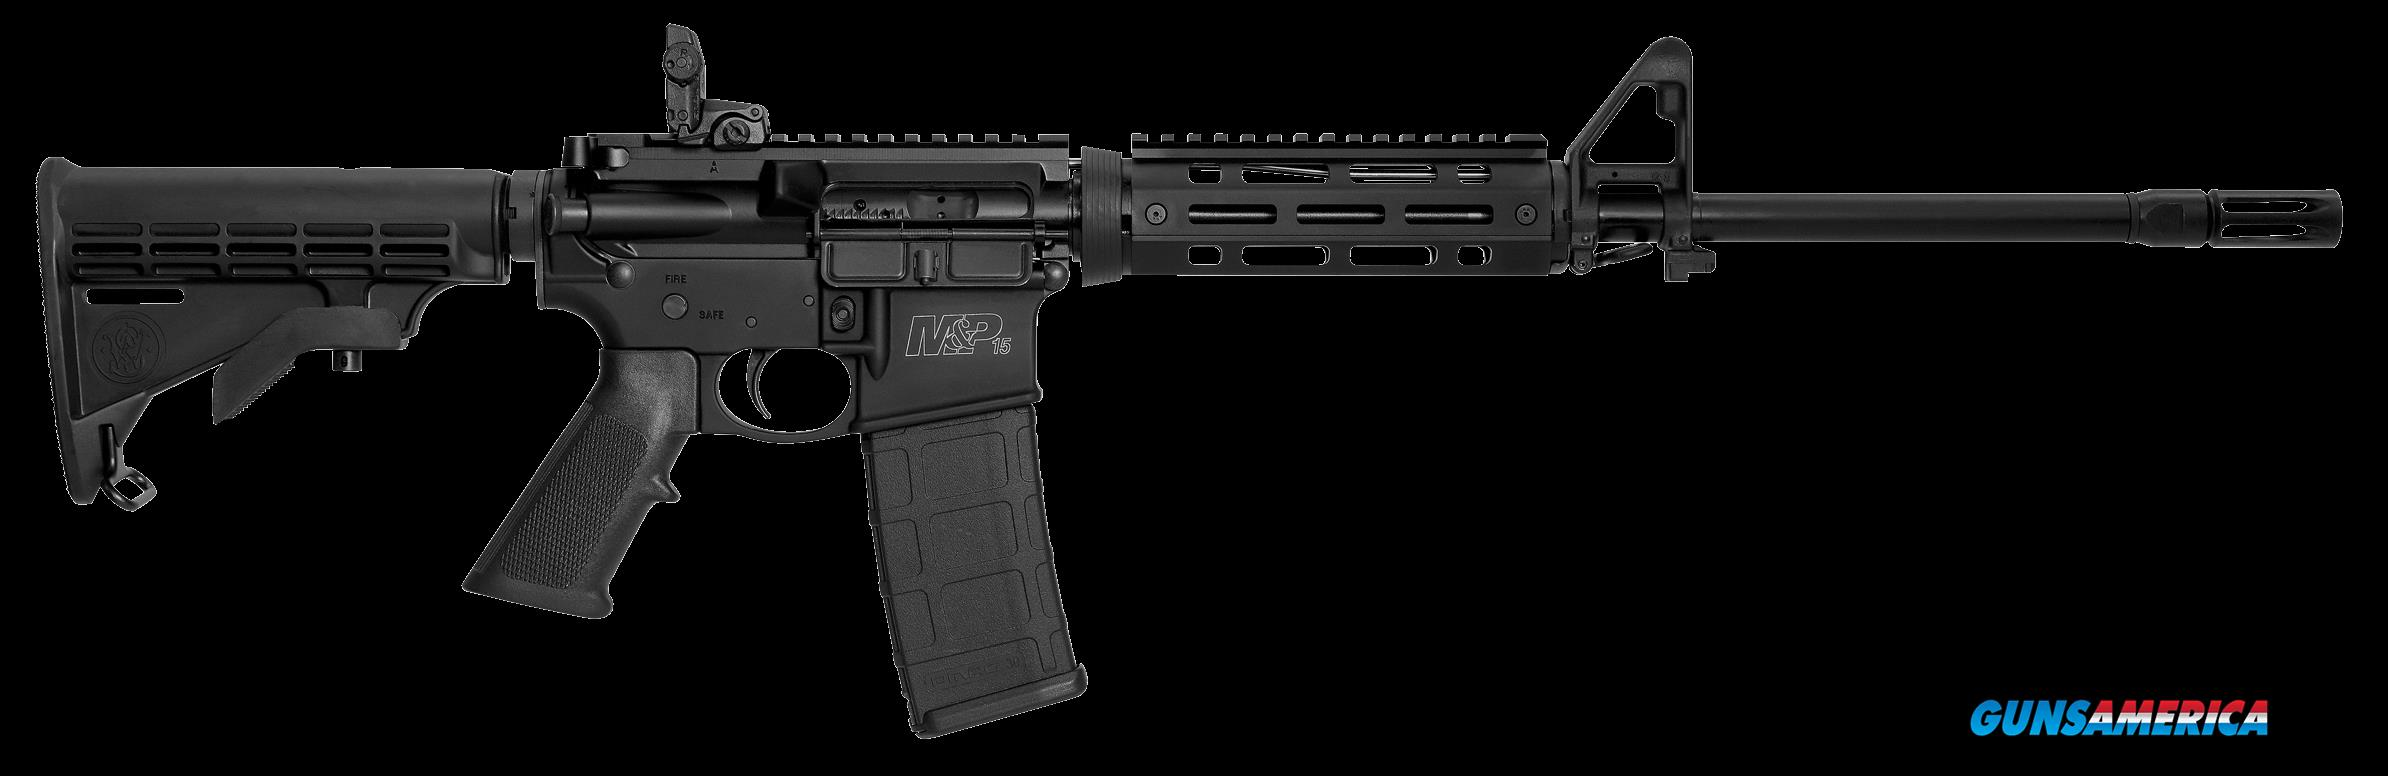 "Smith & Wesson 11535 M&P15 X Semi-Automatic 223 Remington/5.56 NATO 16"" 30+1 6-Position Black Stk  Guns > Rifles > S Misc Rifles"